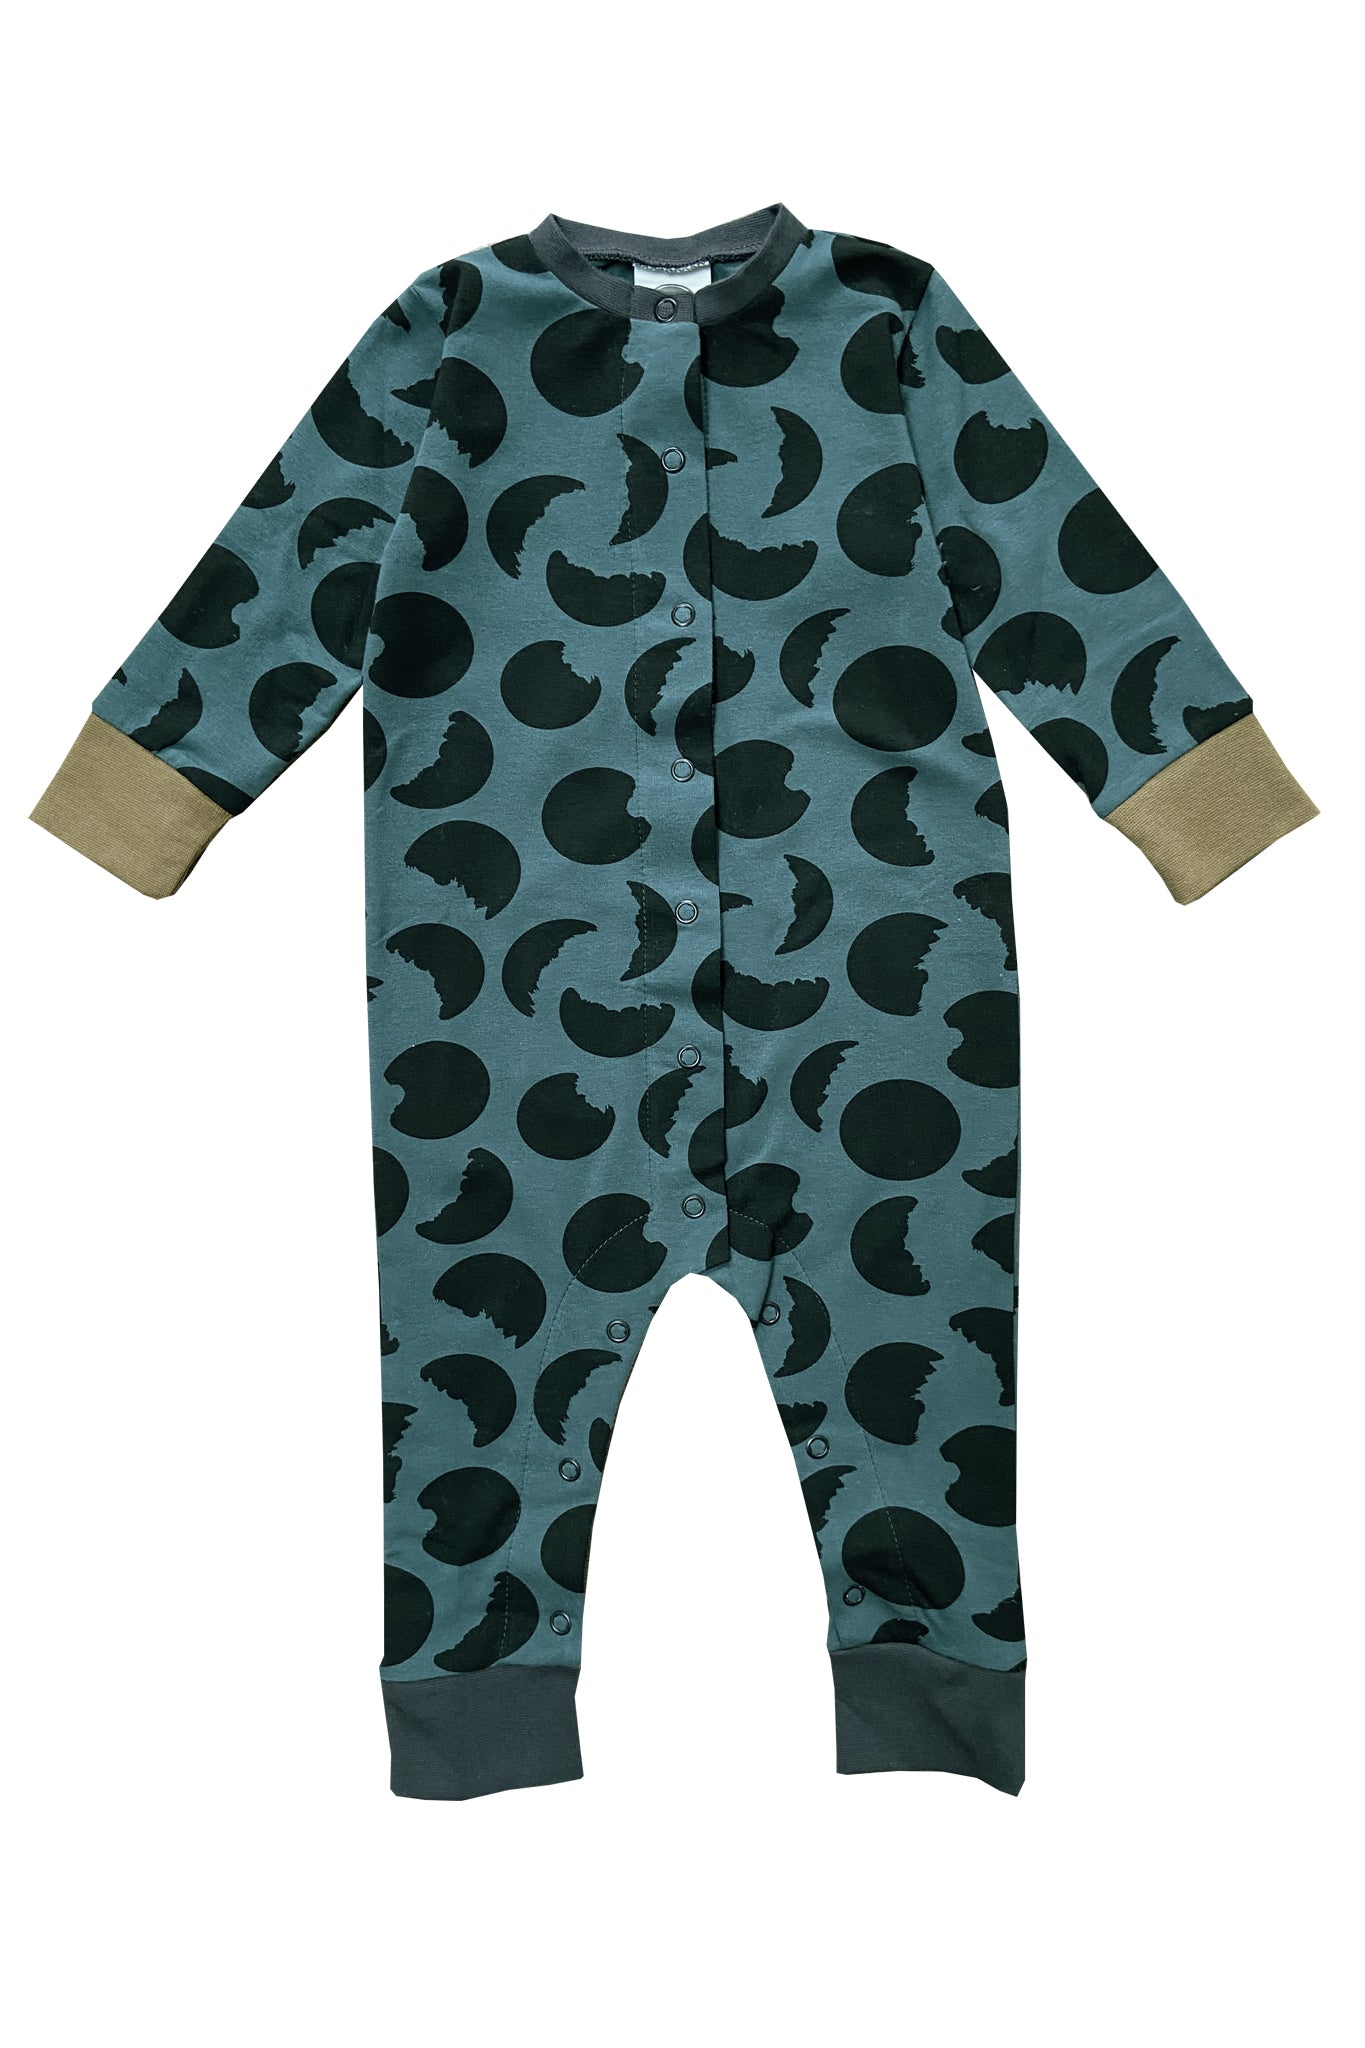 BUTTON DOWN FRONT SLEEPSUIT - MOON PRINT- PINE